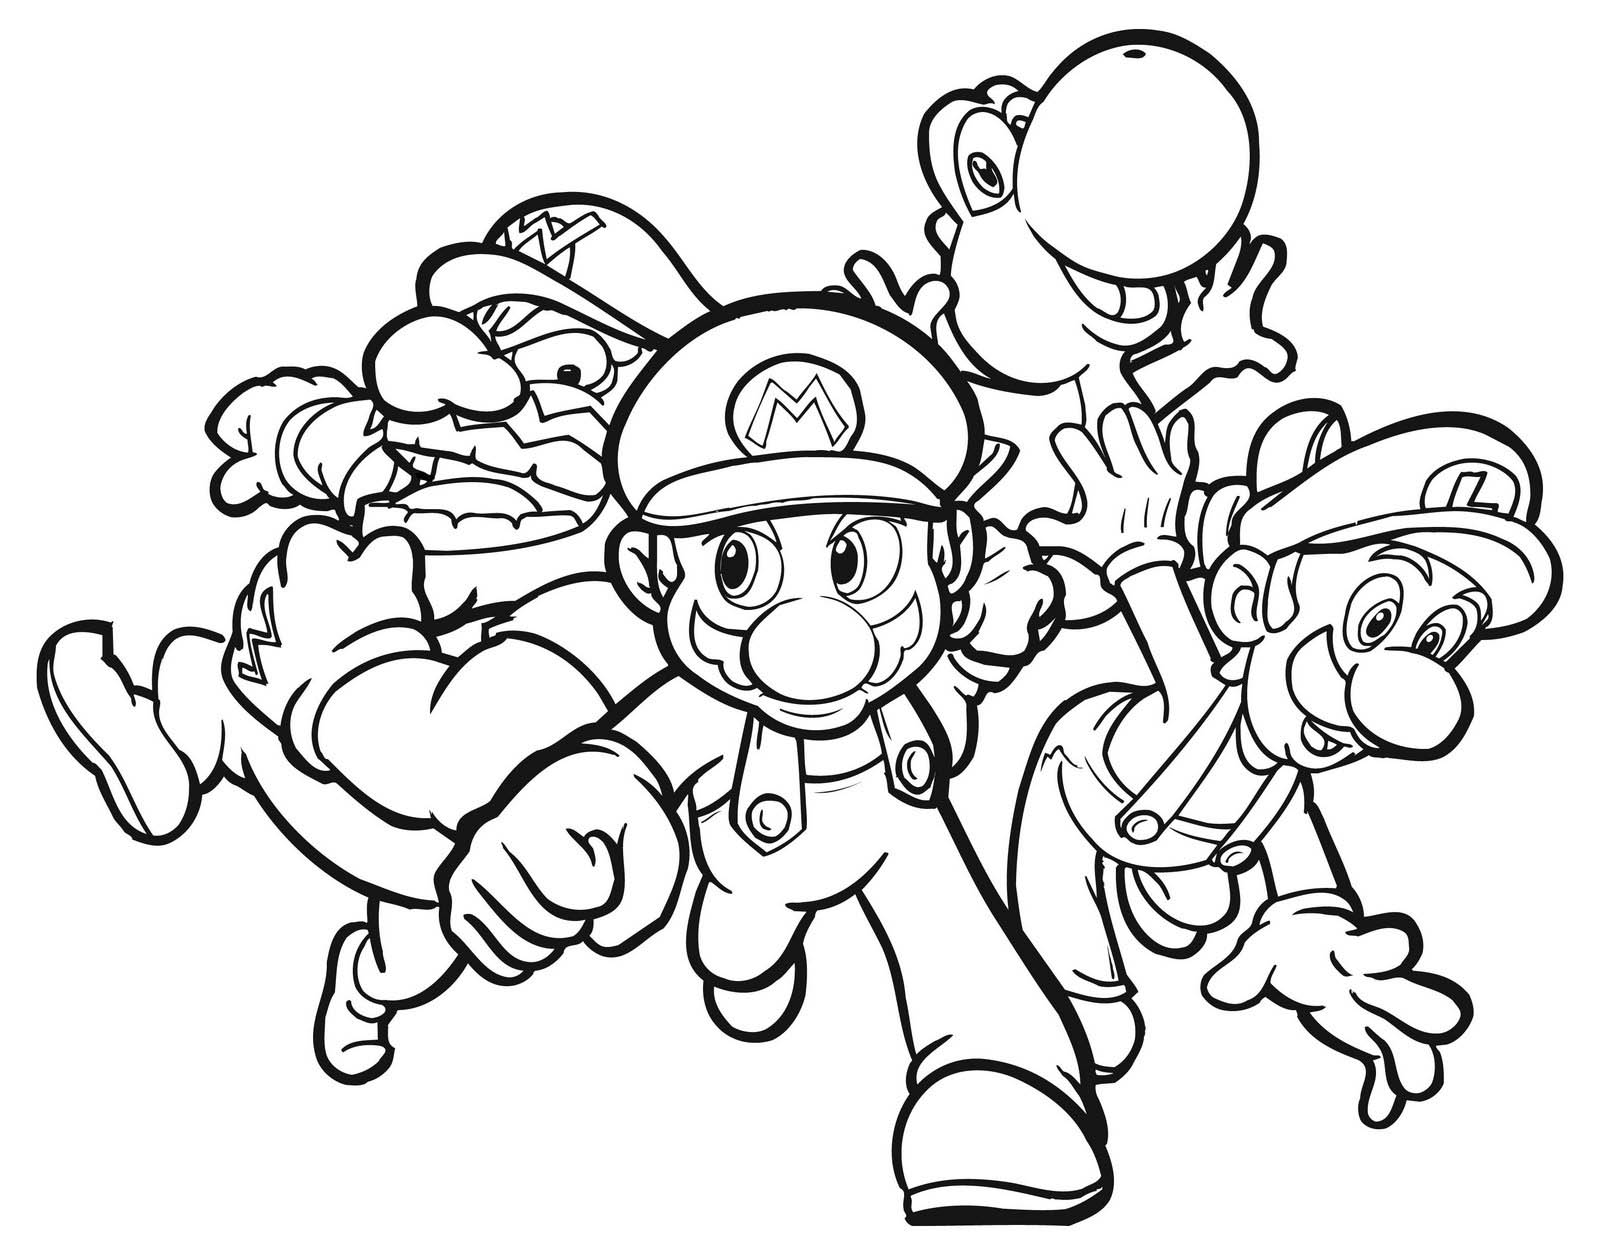 mario bro coloring pages mario bros coloring pages to download and print for free pages coloring mario bro